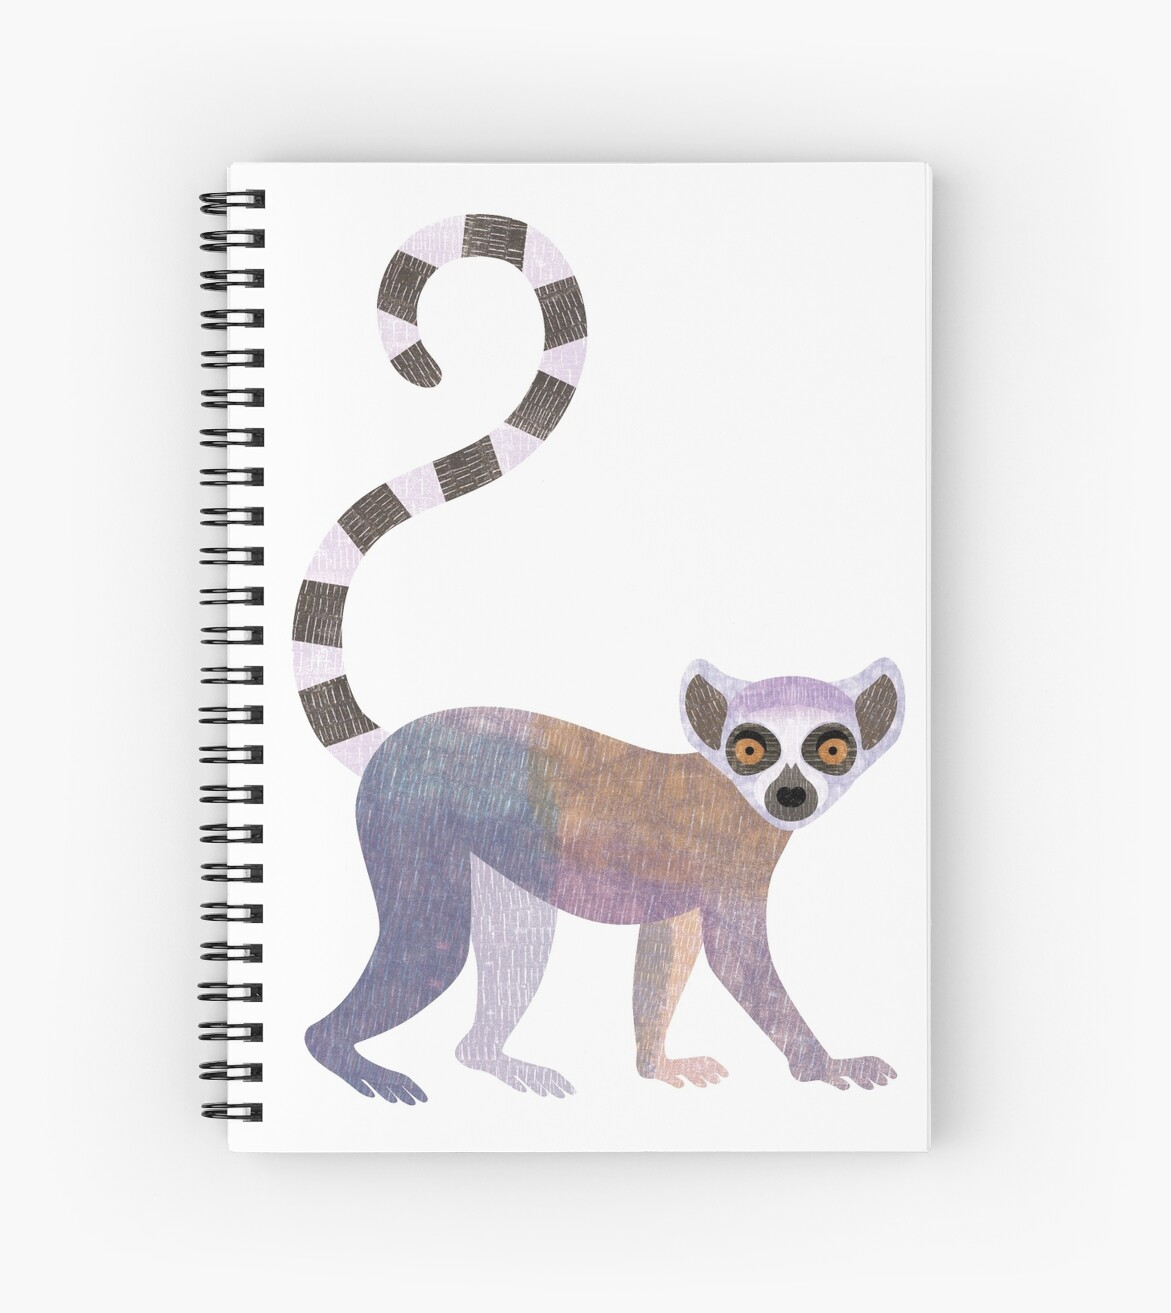 L is for Lemur by Lizzie Scott